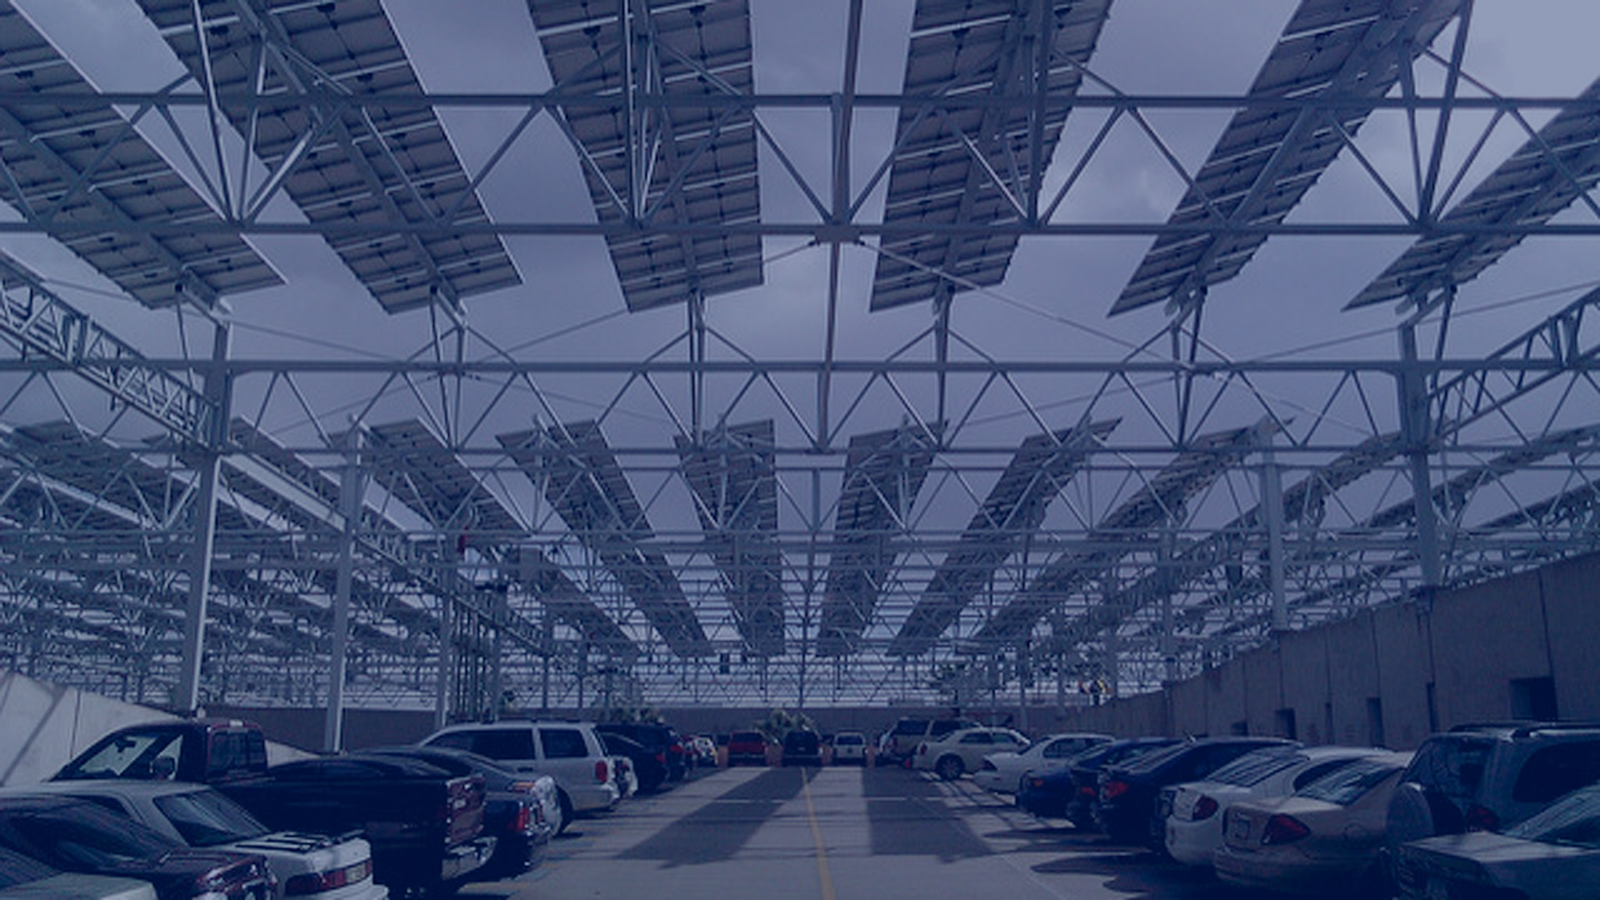 """<h4>Arizona State University</h4> <h5>In 2016, Arizona State University (ASU) had the most solar energy of any college nationwide, producing enough solar energy to meet nearly half of its peak daytime energy demand. <a href=""""#two""""><u>Learn more.</u></a> </h5> <em>Kevin Dooley via Flickr, CC BY 2.0</em>"""